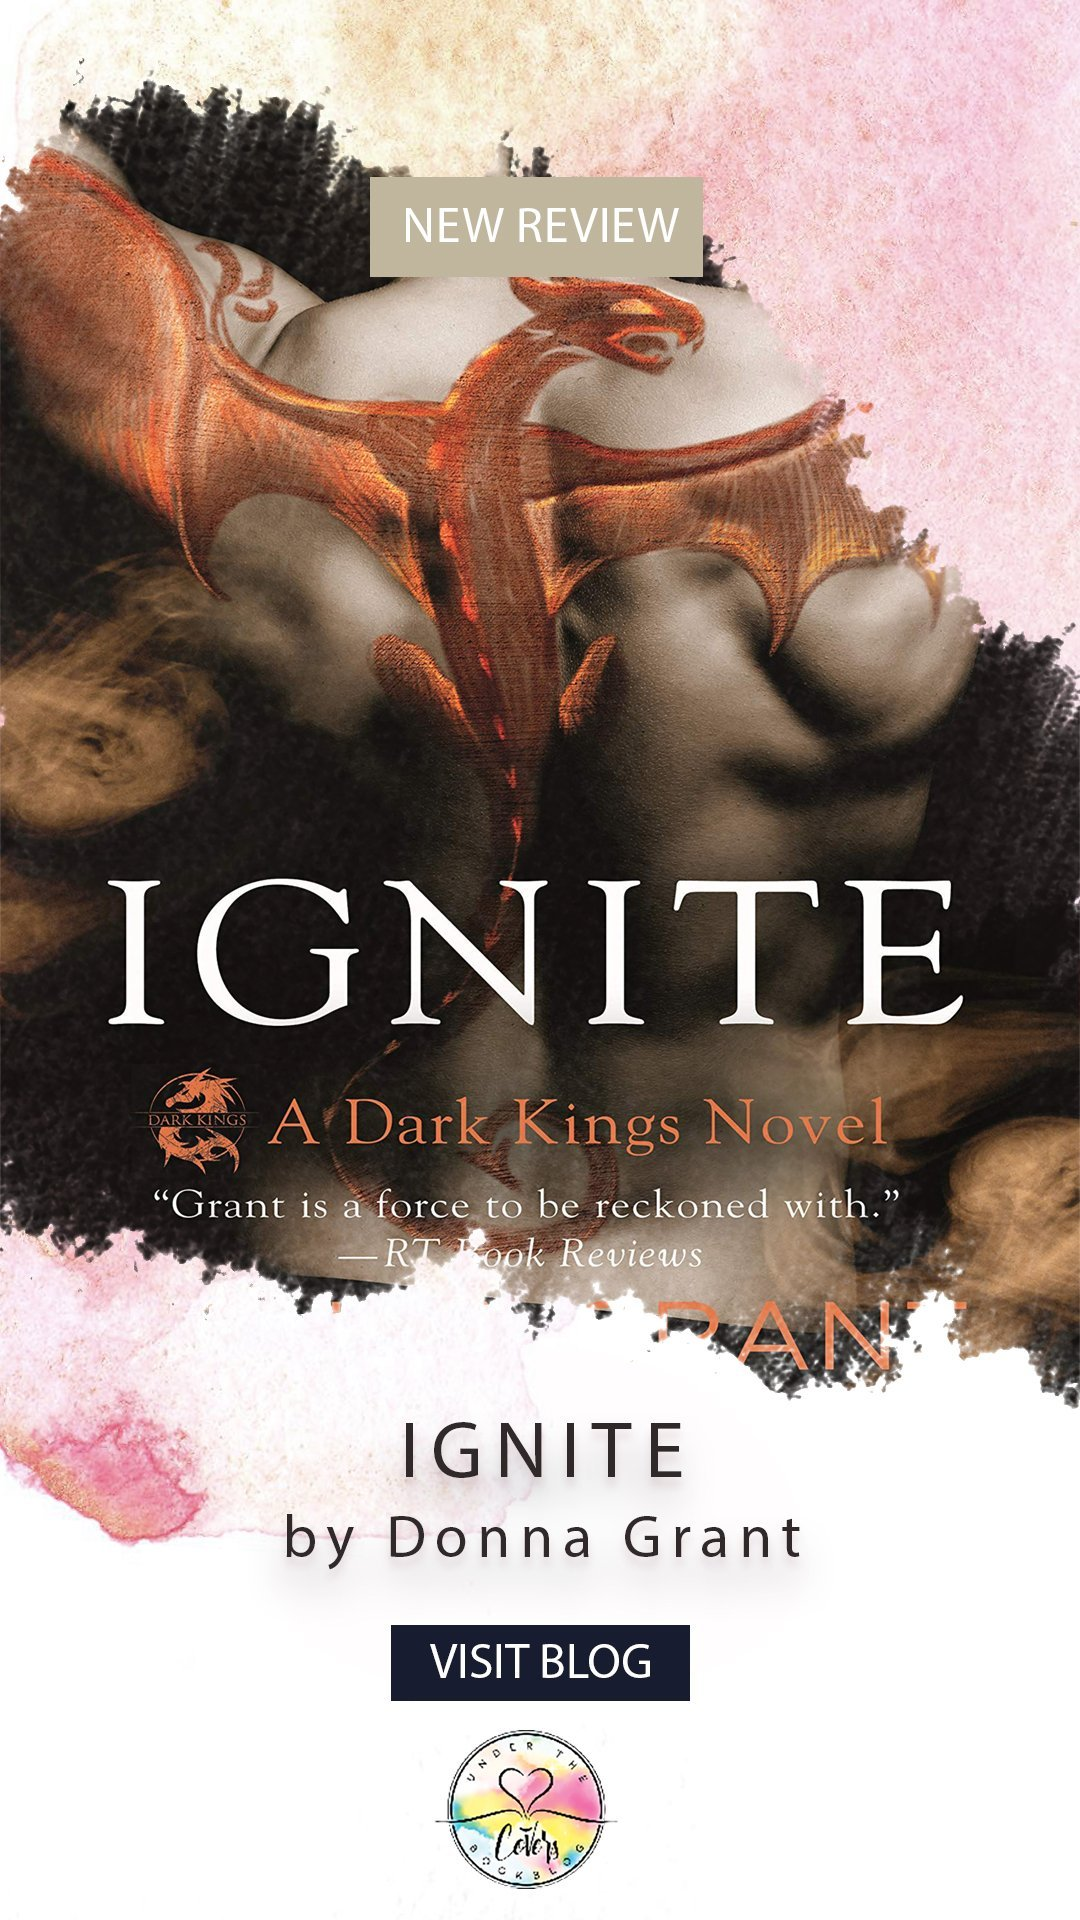 ARC Review: Ignite by Donna Grant